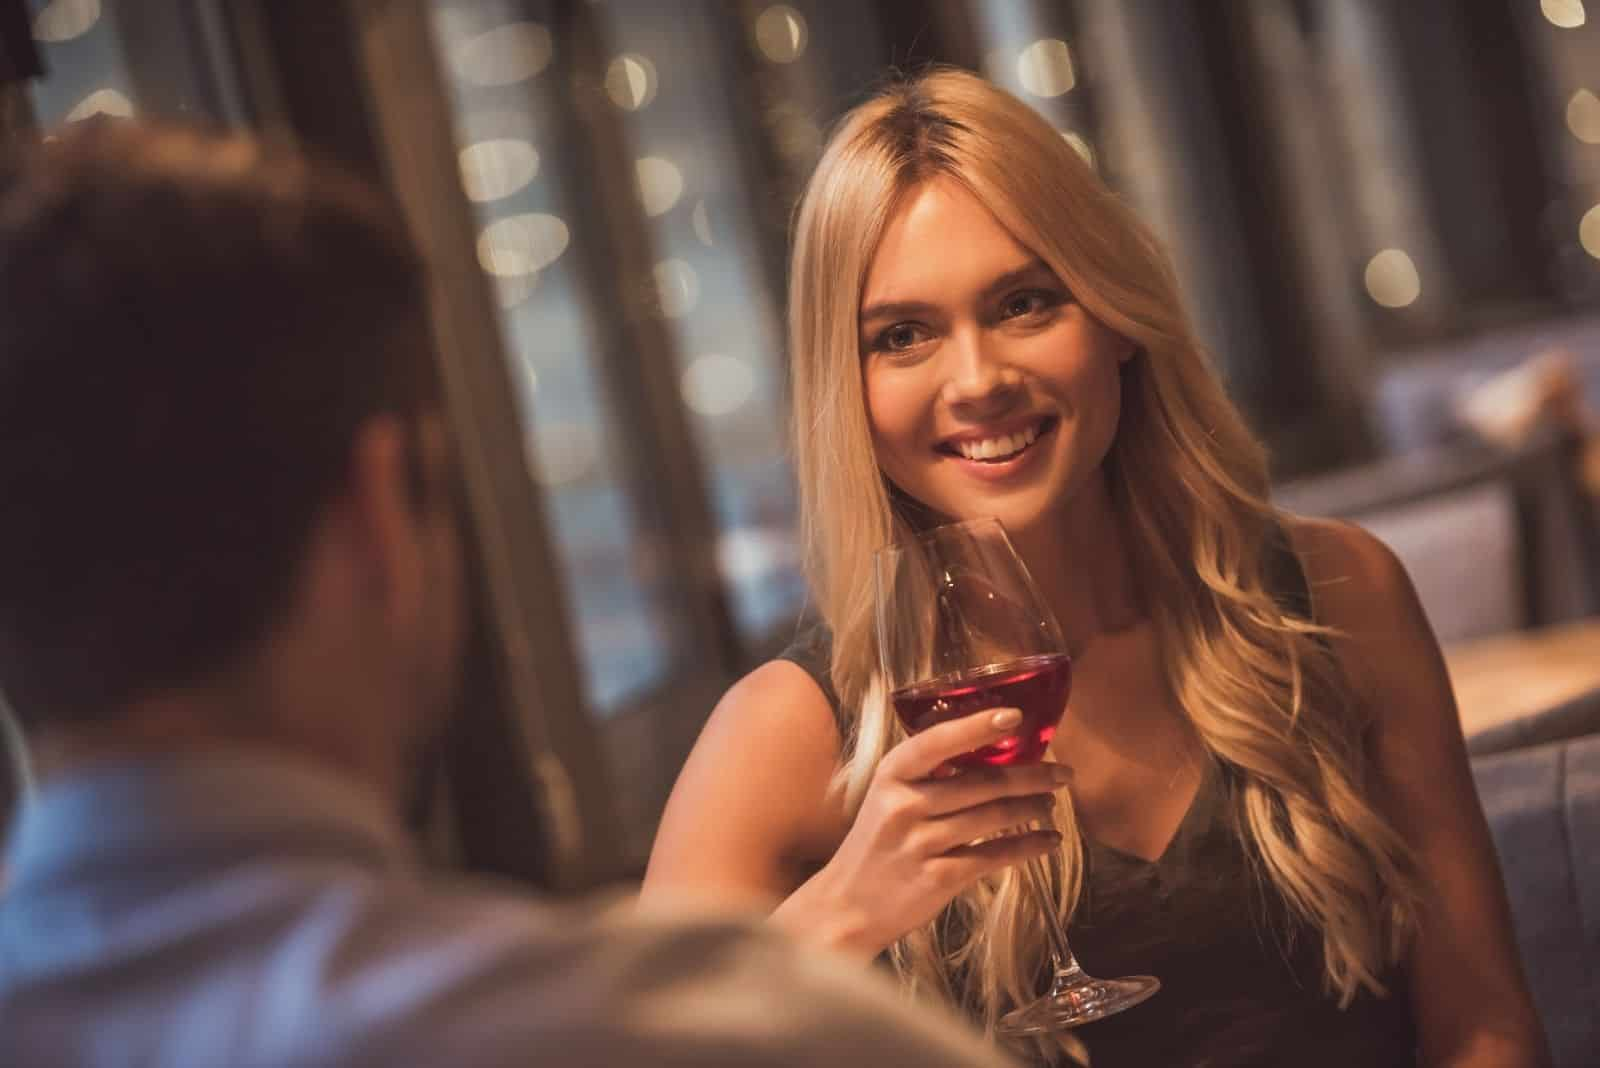 beautiful young woman looking at her date while holding a wine of glass